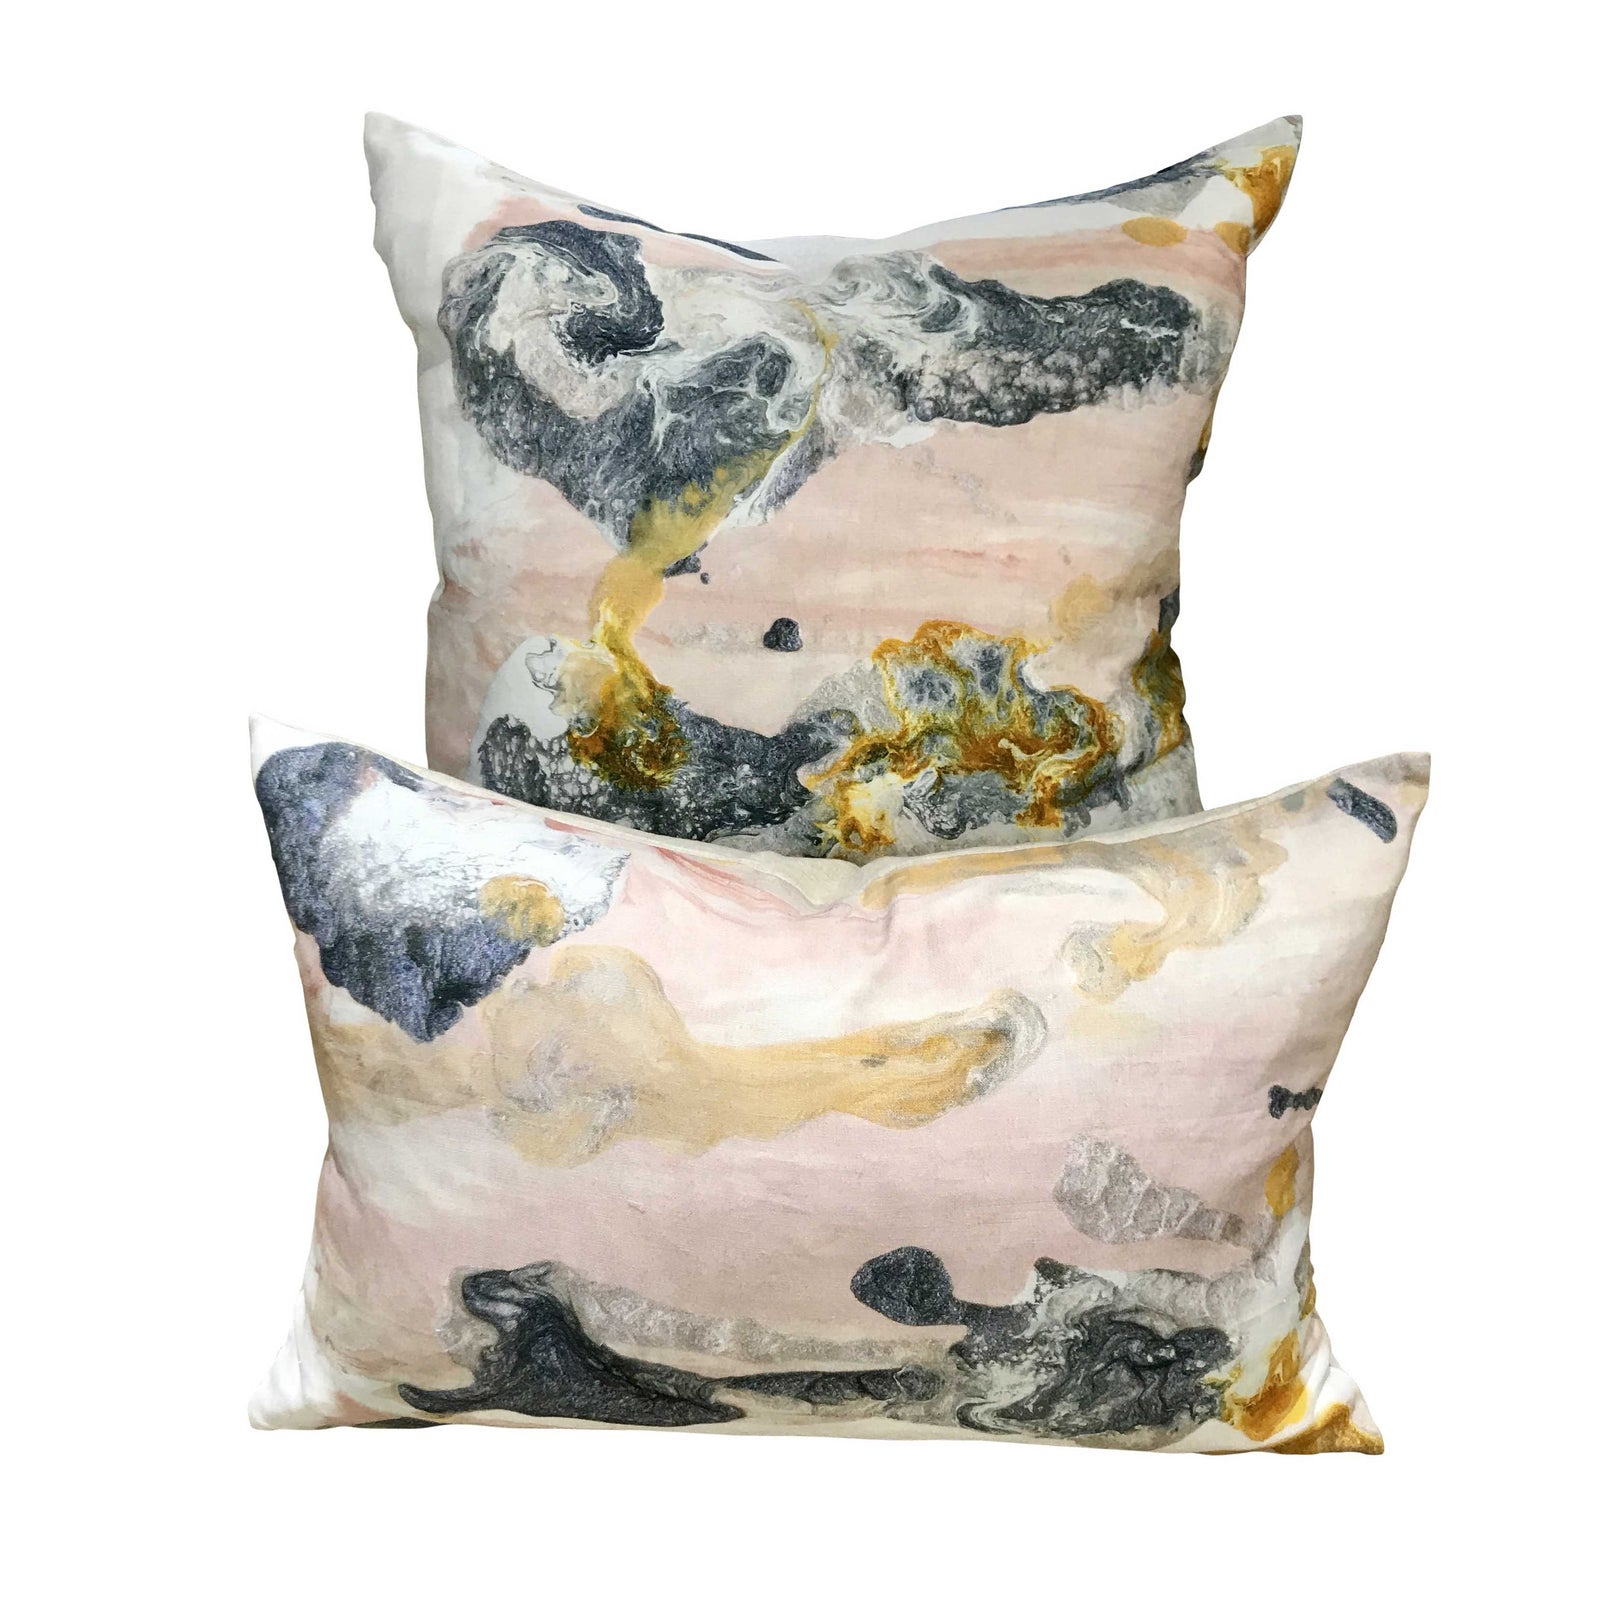 Hobbs & Co Cushion Covers - Blush